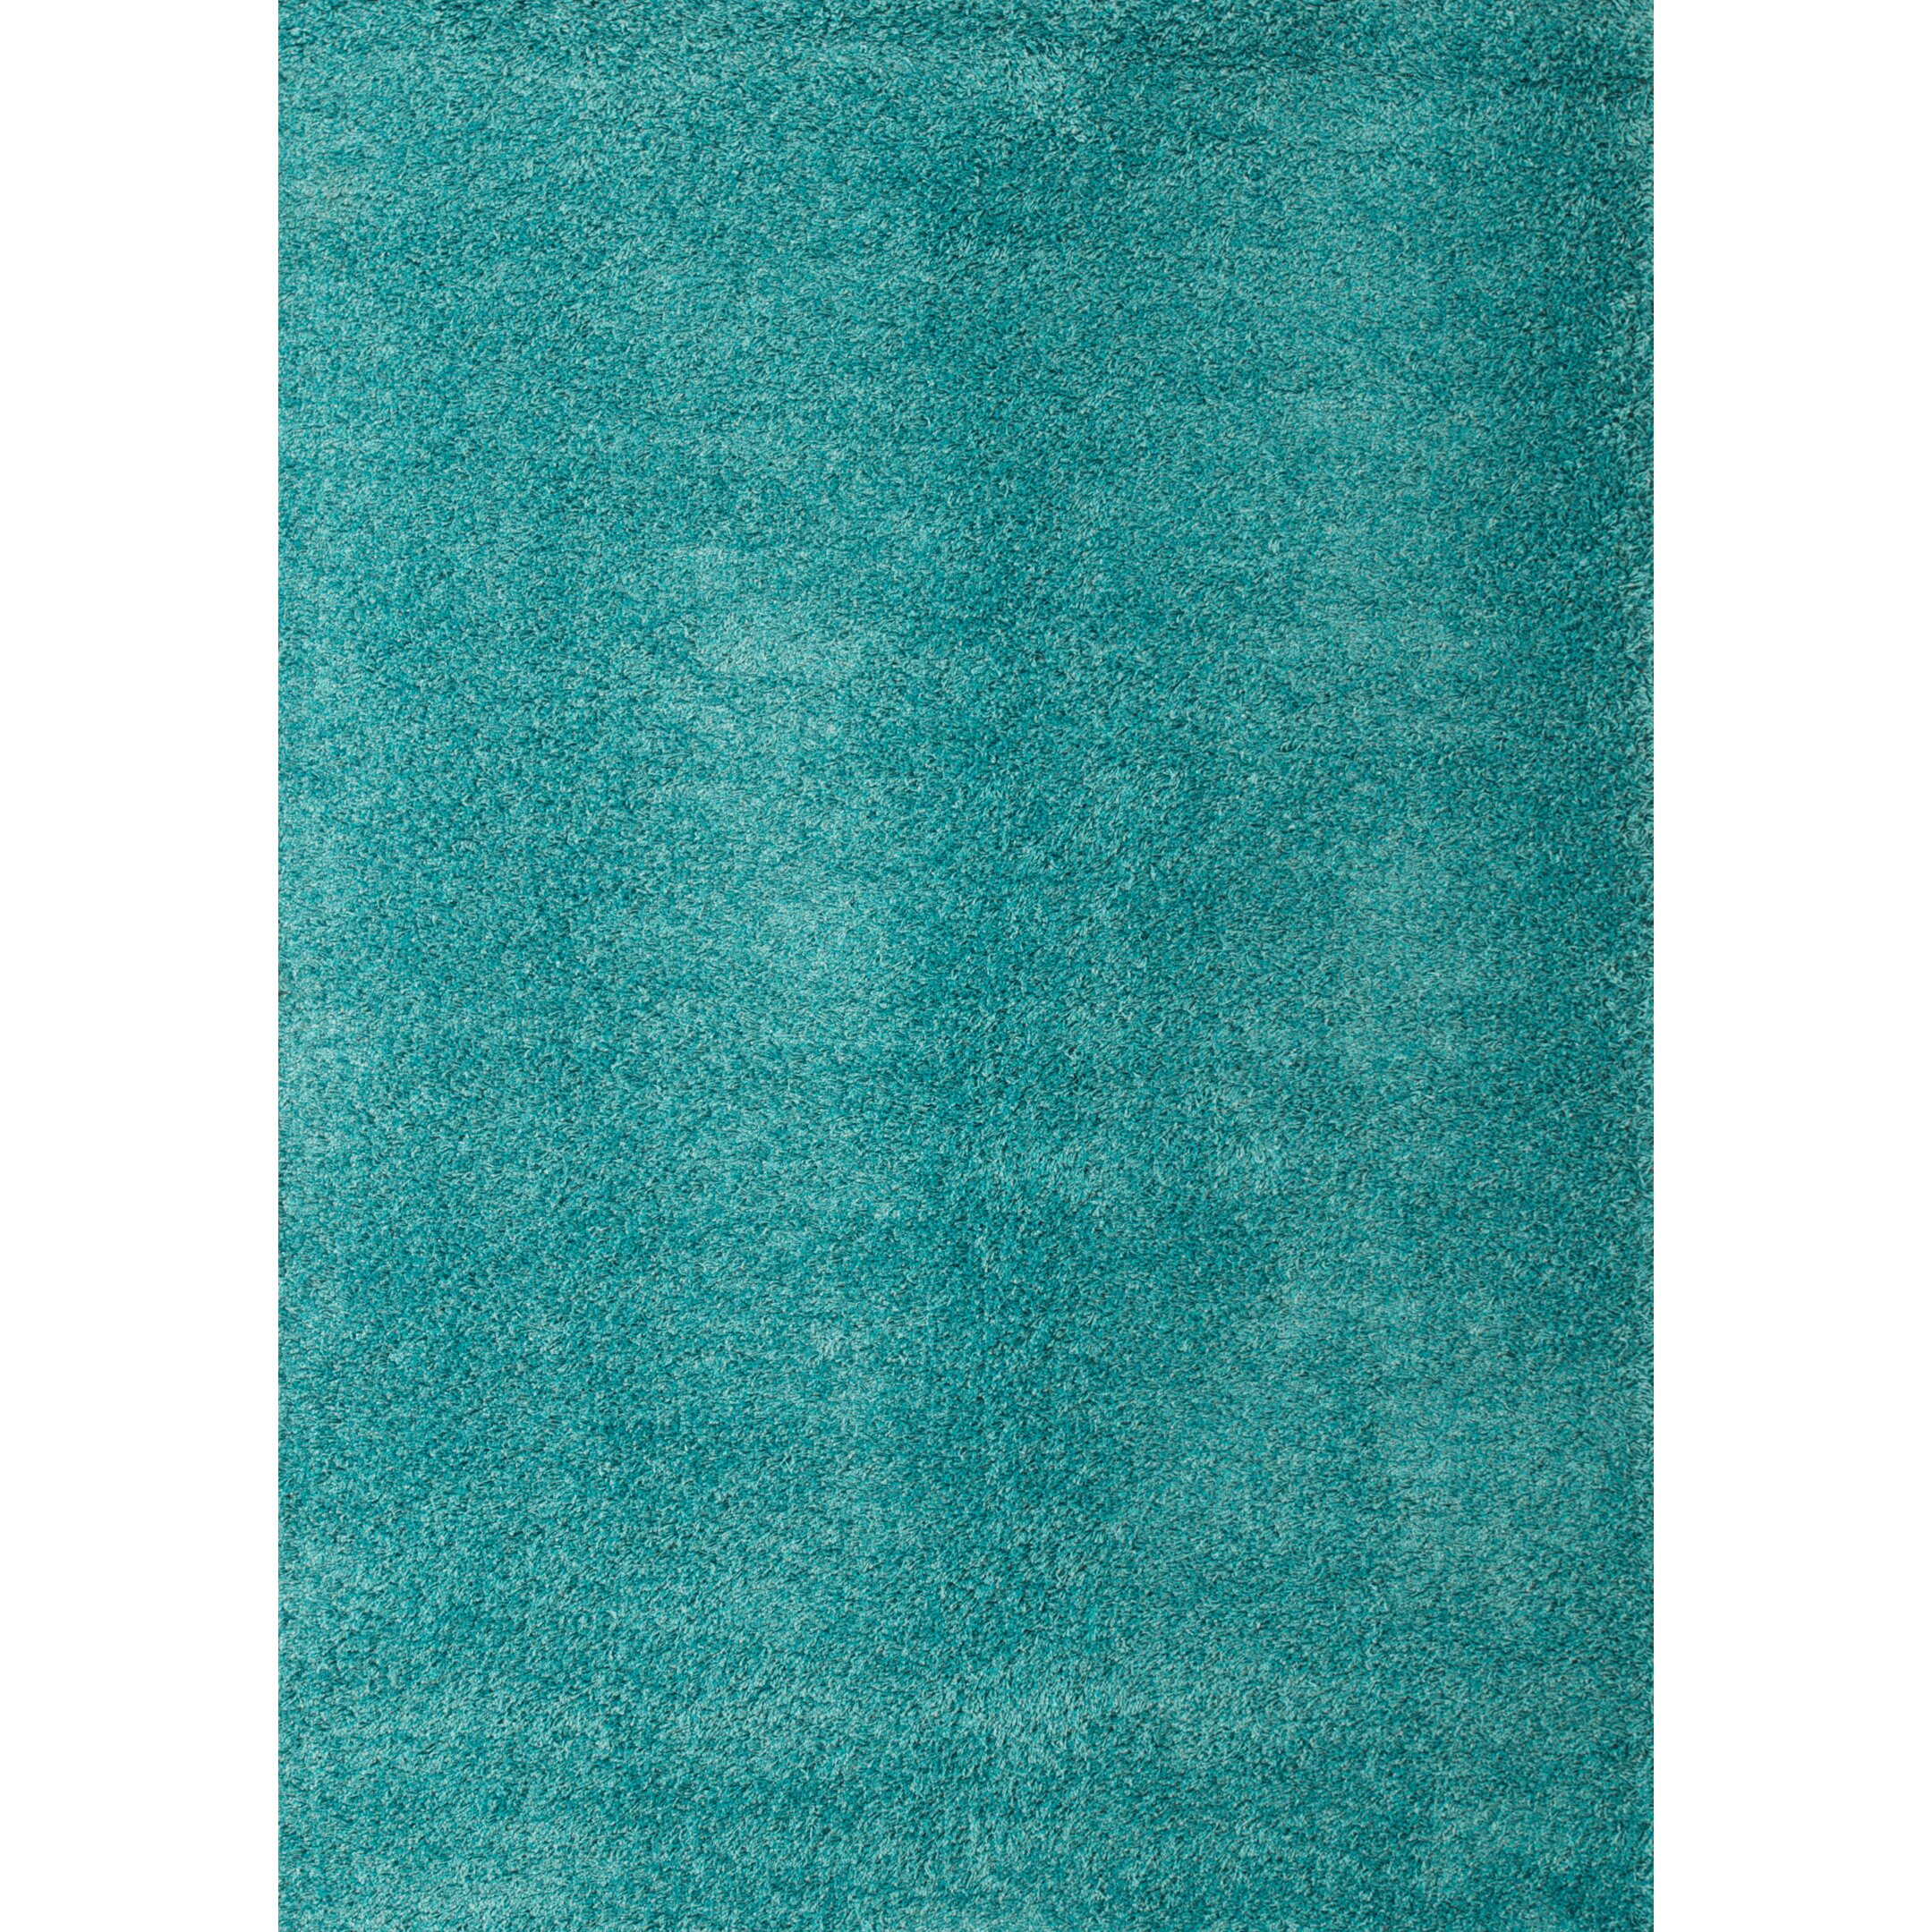 Abacasa Domino Teal Area Rug & Reviews